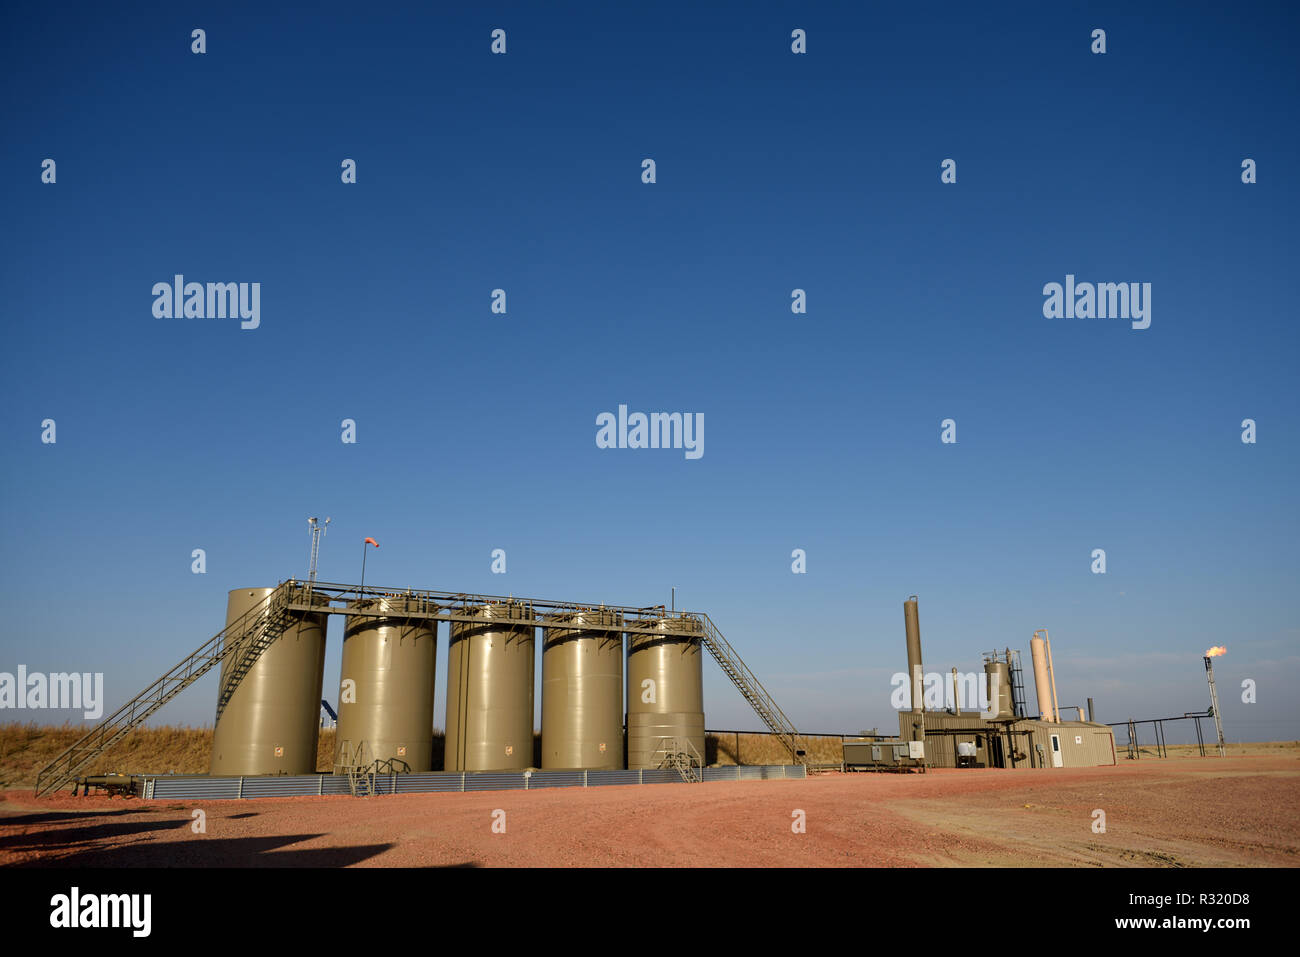 Natural gas flare, crude oil, well site, production holding tanks, blue sky, Niobrara shale, Wyoming, copy space - Stock Image